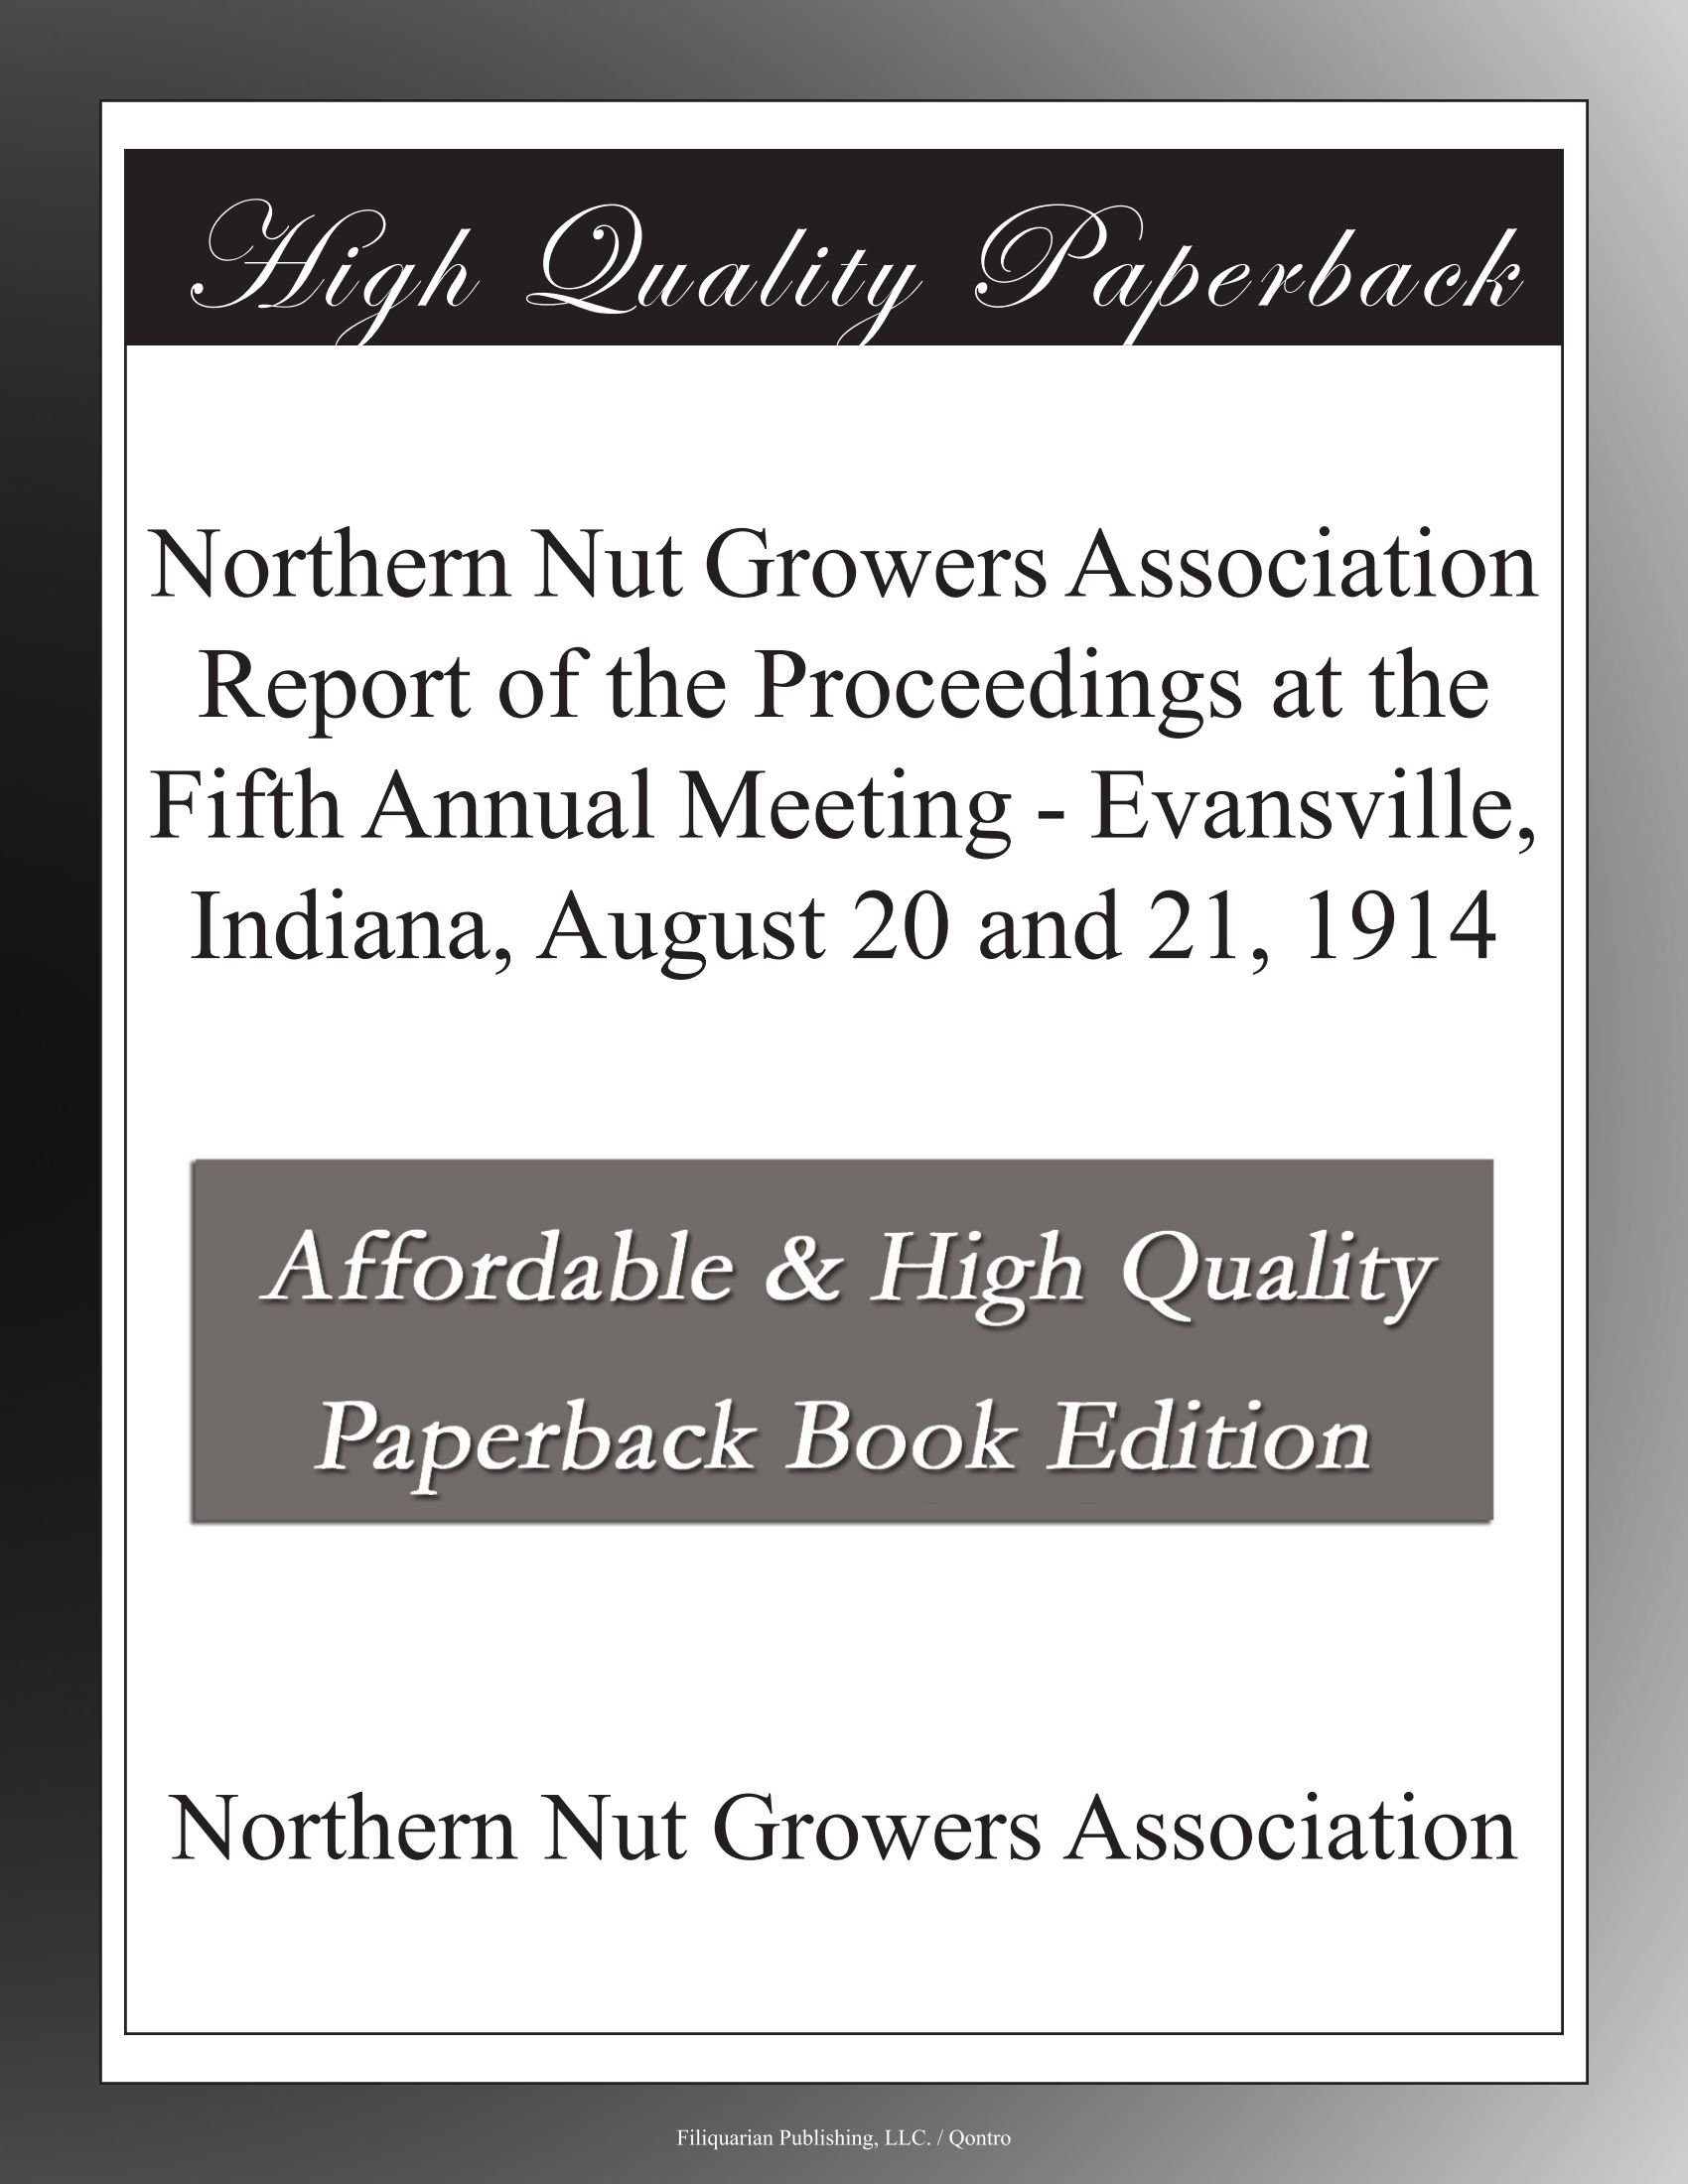 Download Northern Nut Growers Association Report of the Proceedings at the Fifth Annual Meeting - Evansville, Indiana, August 20 and 21, 1914 ebook